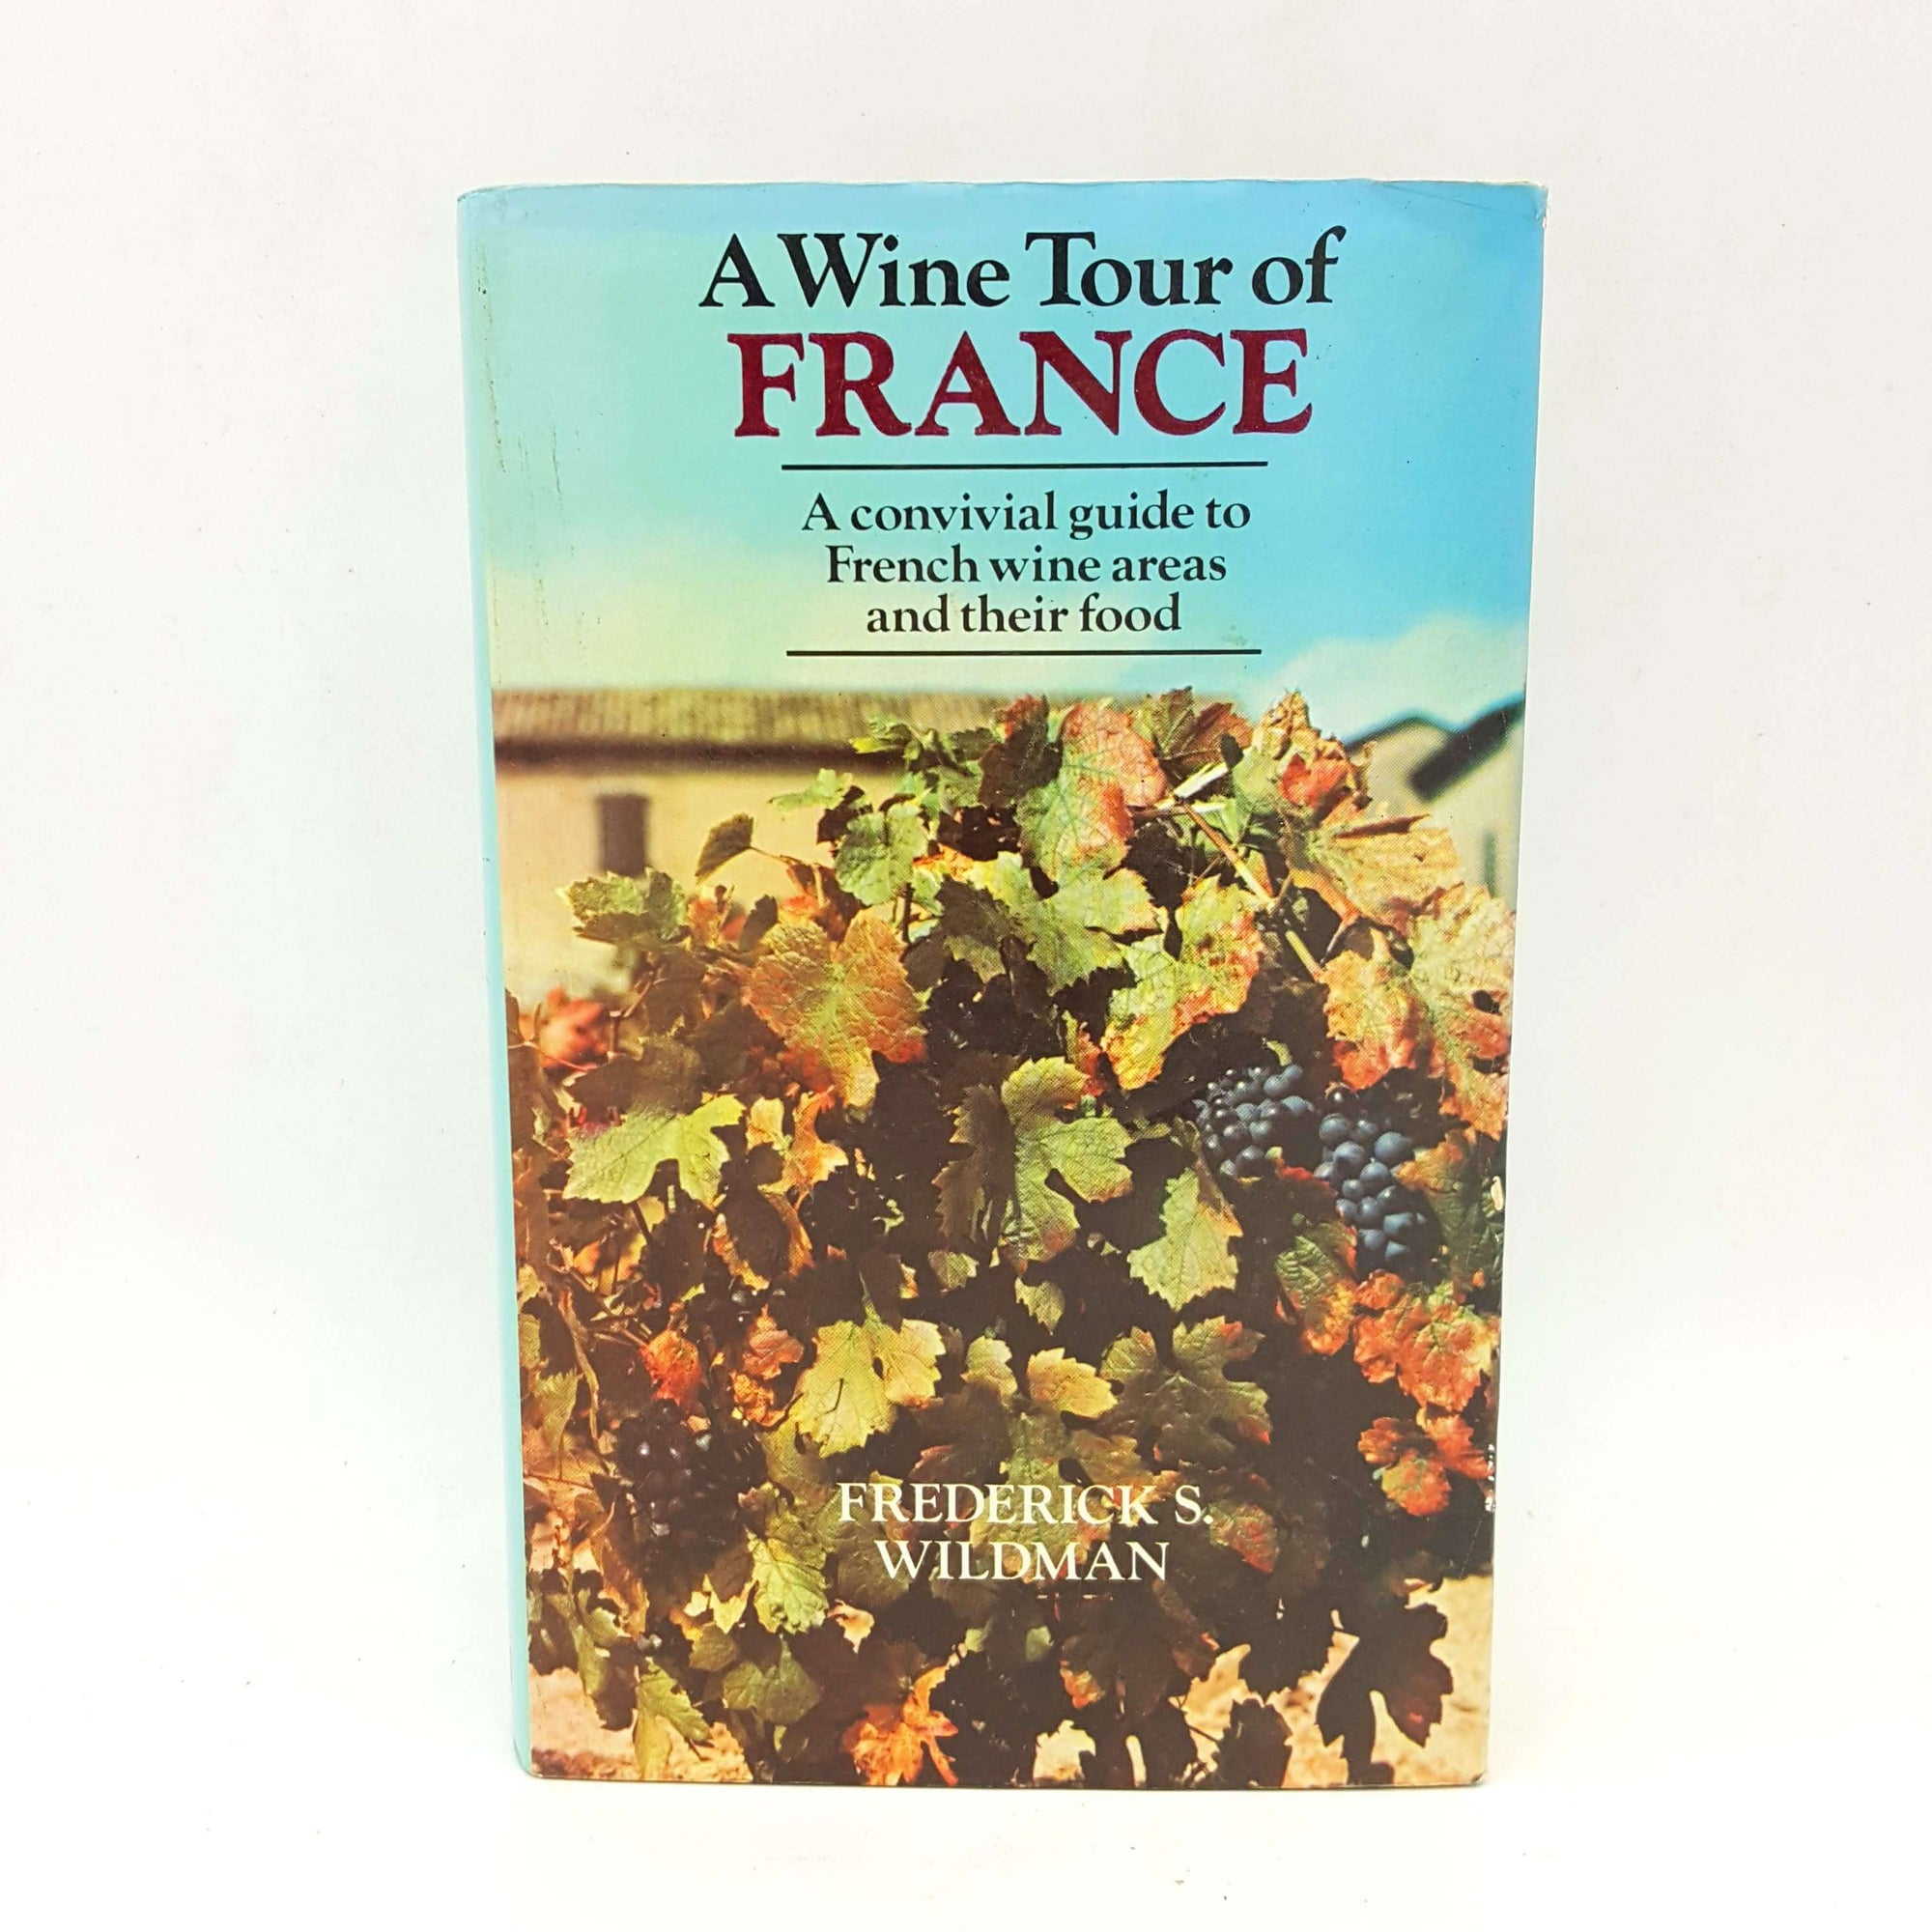 First Edition - A Wine Tour of France by Frederick S. Wildman 1976 Country House Library